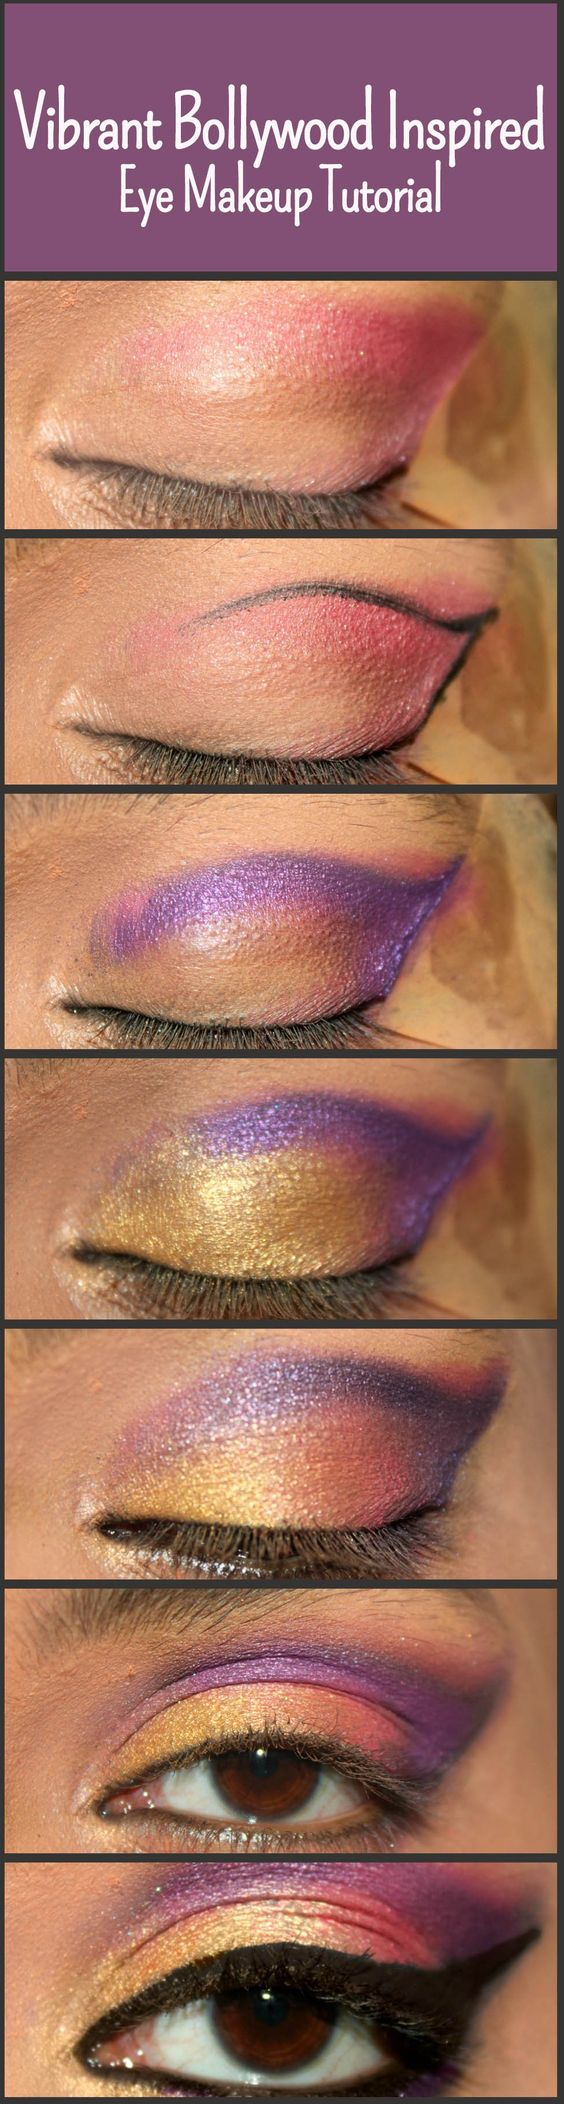 bollywood inspired eye makeup � step by step tutorial with